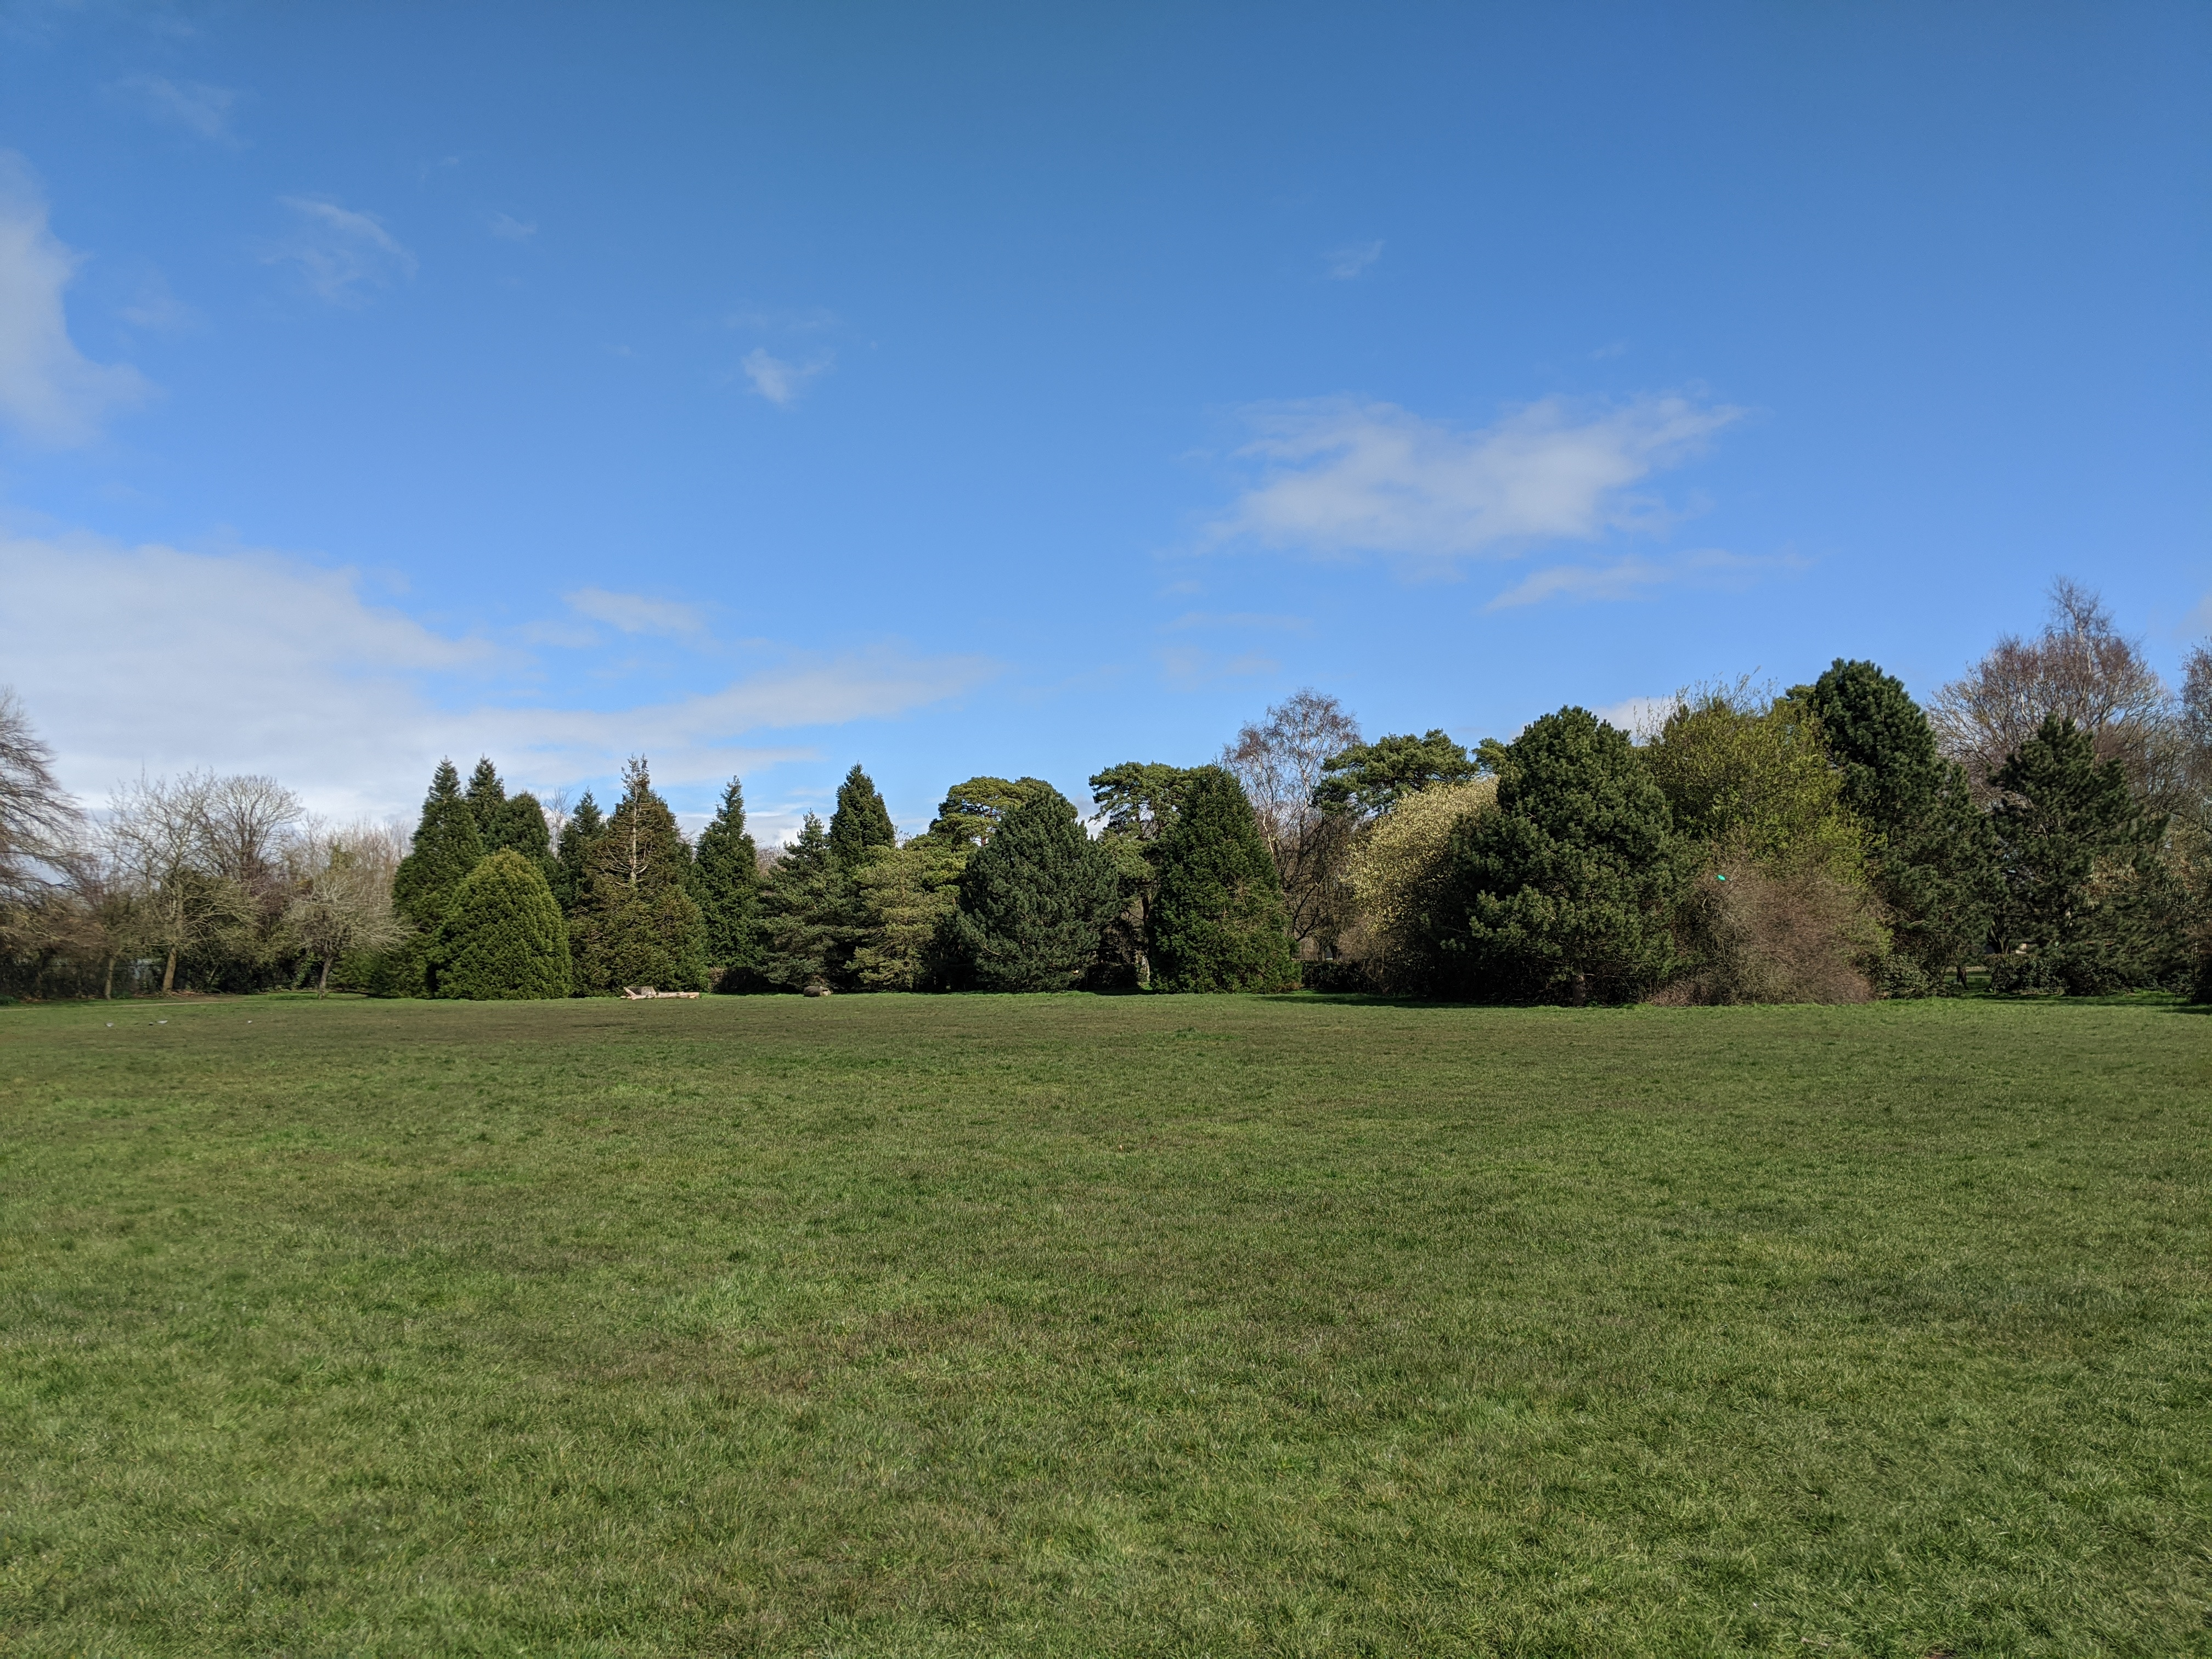 Why You Should Not Be Allowed To Have That Picnic In The Park Even If It Does Not Make A Difference Practical Ethics Which of the sentences are correct? practical ethics university of oxford